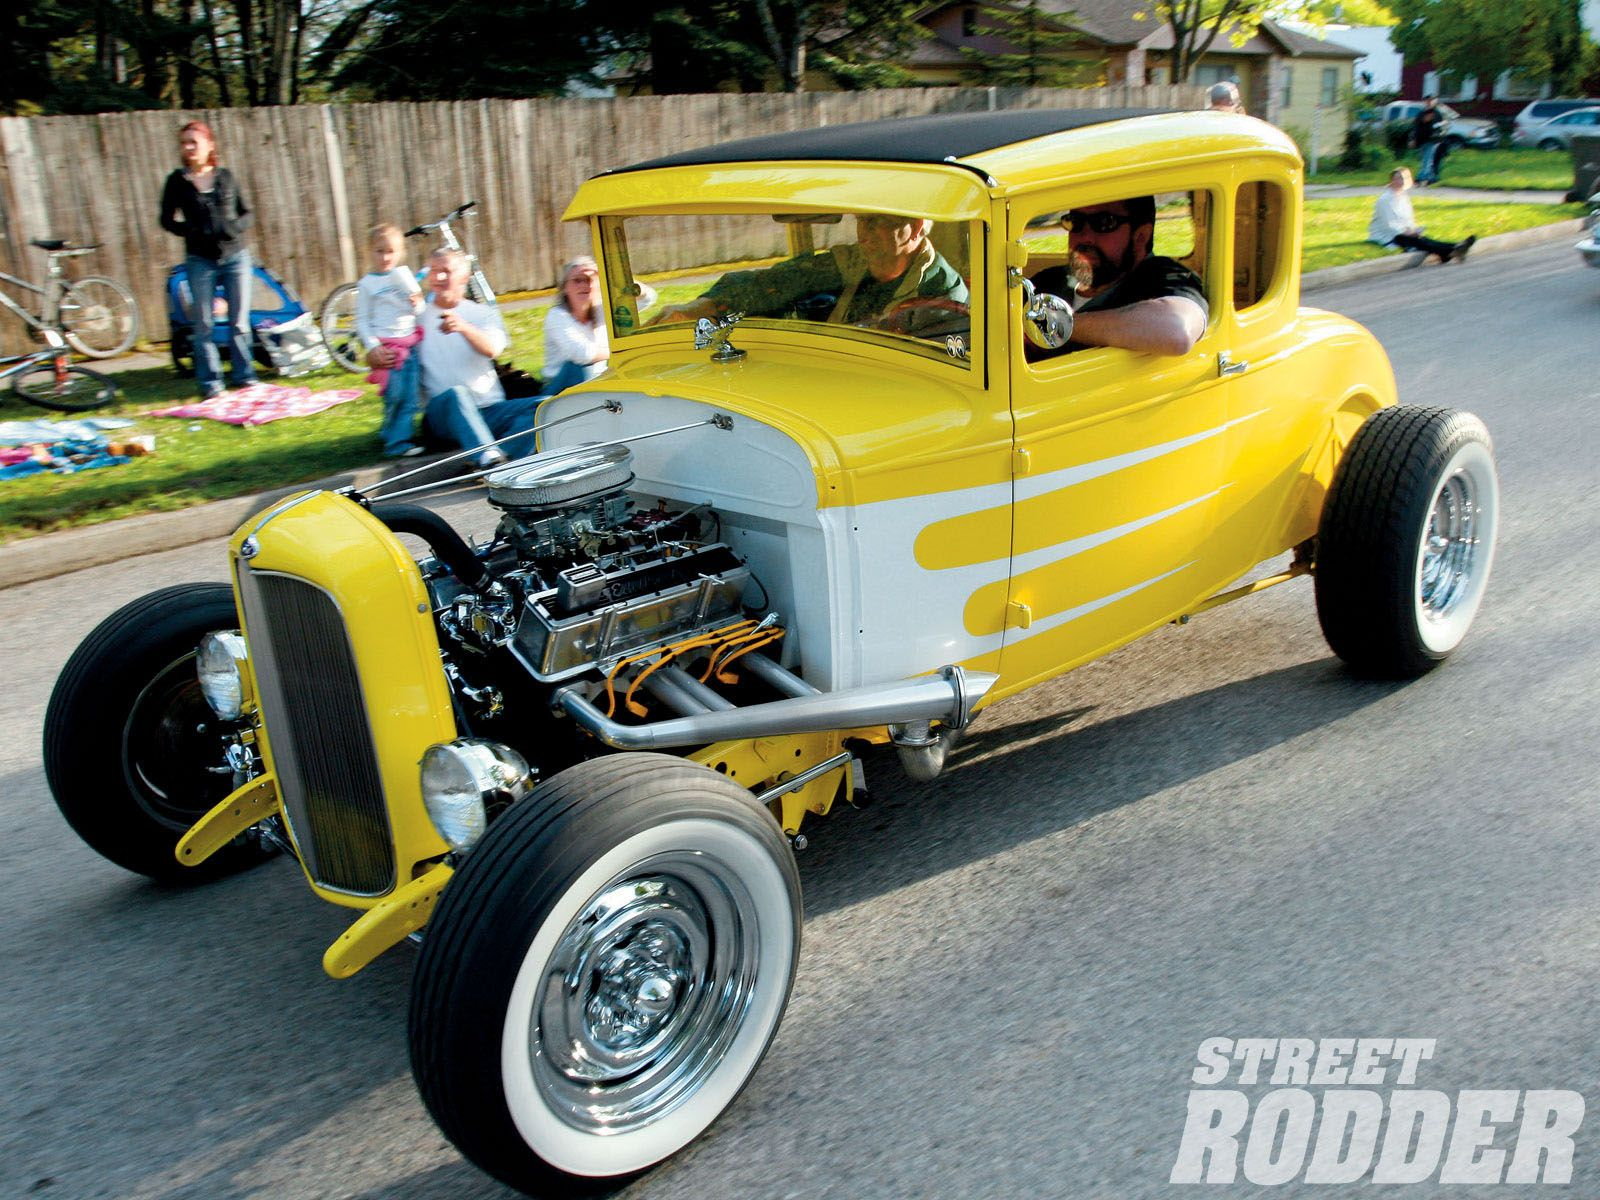 street rod projects for sale Street rod project sale - search for street rod project sale wwwautos24-7com/street rod project sale the best new and used autos, parts & accessories your auto search engine.